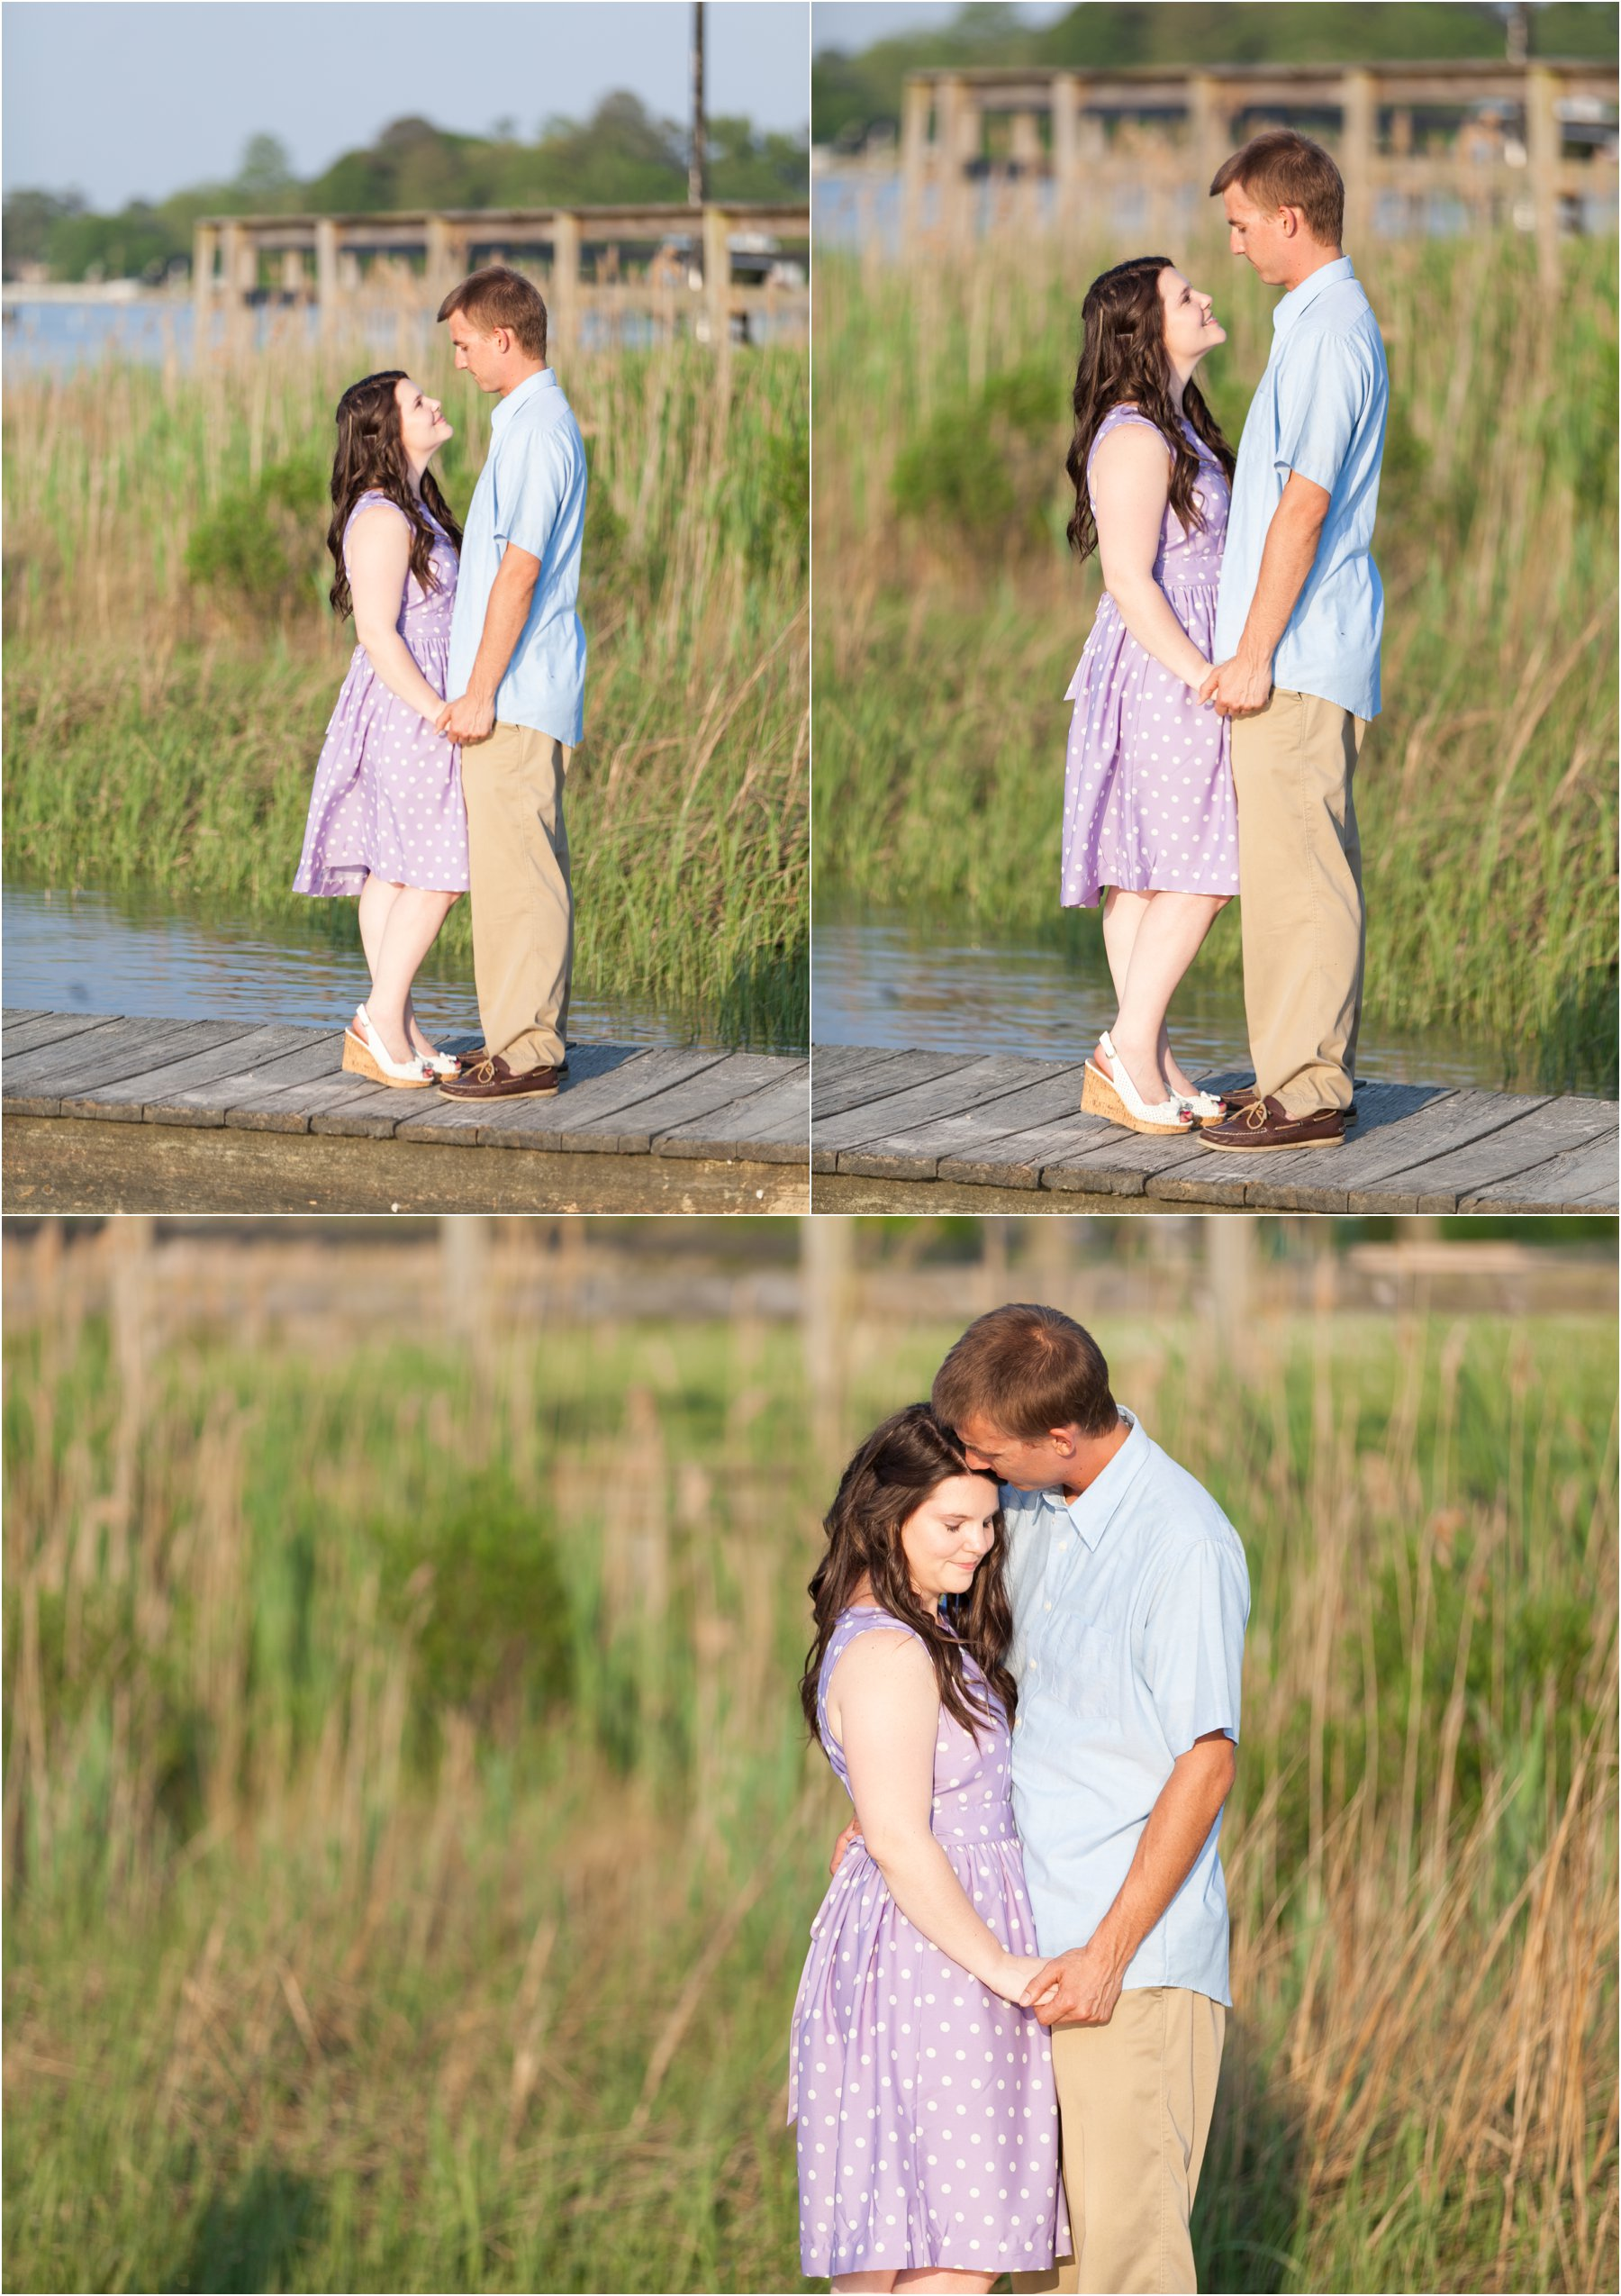 engagement_Photography_bike_ride_engagements_Jessica_Ryan_Photography_virginia_virginia_beach_0335